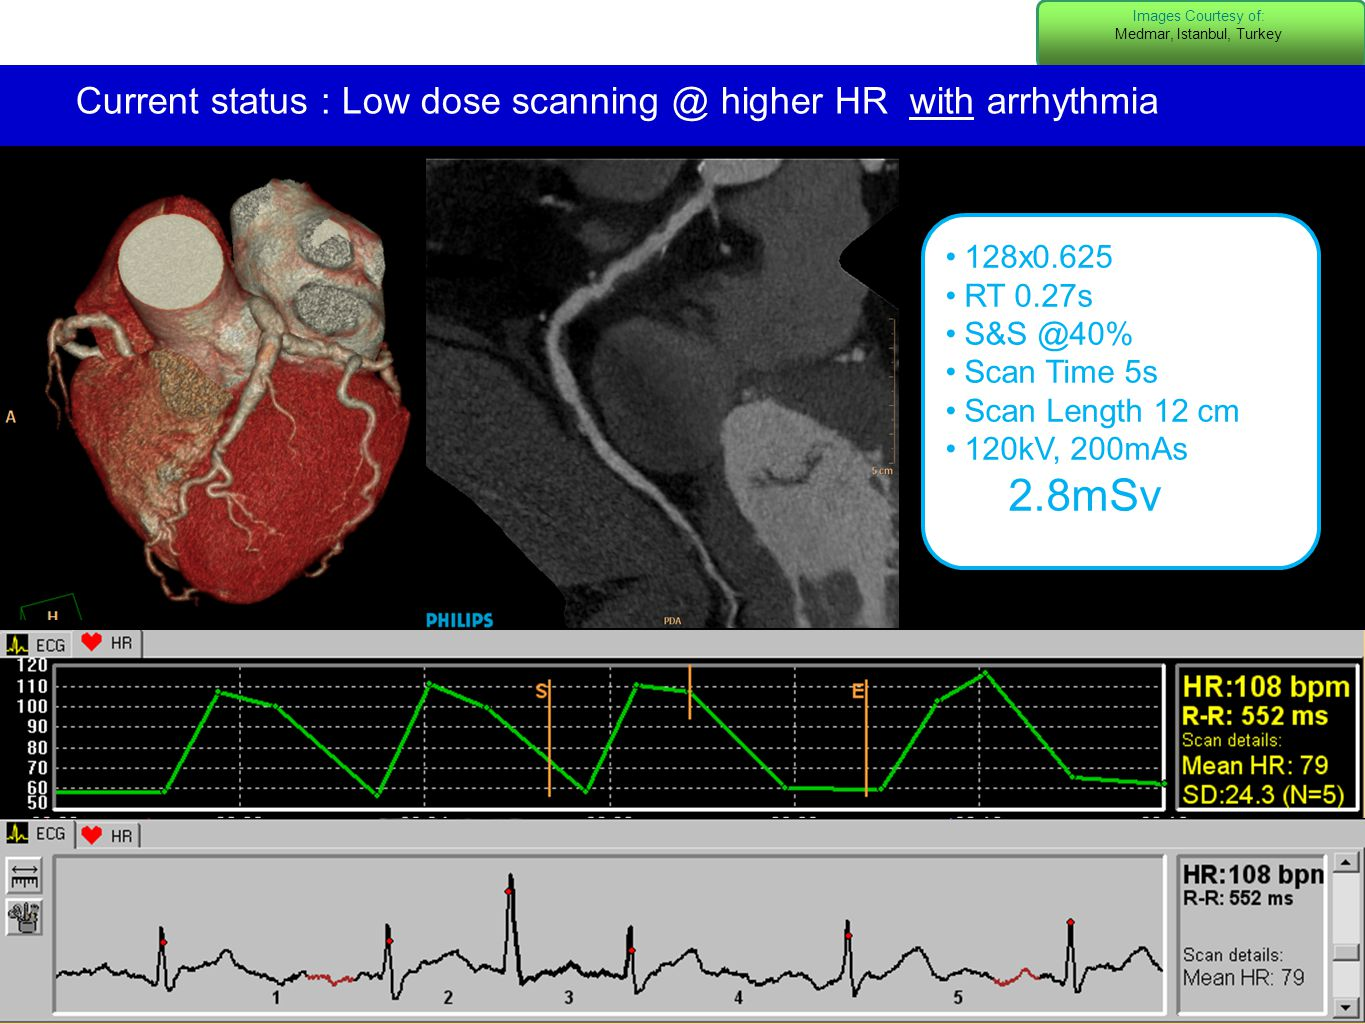 3 3 Images Courtesy of: Medmar, Istanbul, Turkey Current status : Low dose scanning @ higher HR with arrhythmia 128x0.625 RT 0.27s S&S @40% Scan Time 5s Scan Length 12 cm 120kV, 200mAs 2.8mSv